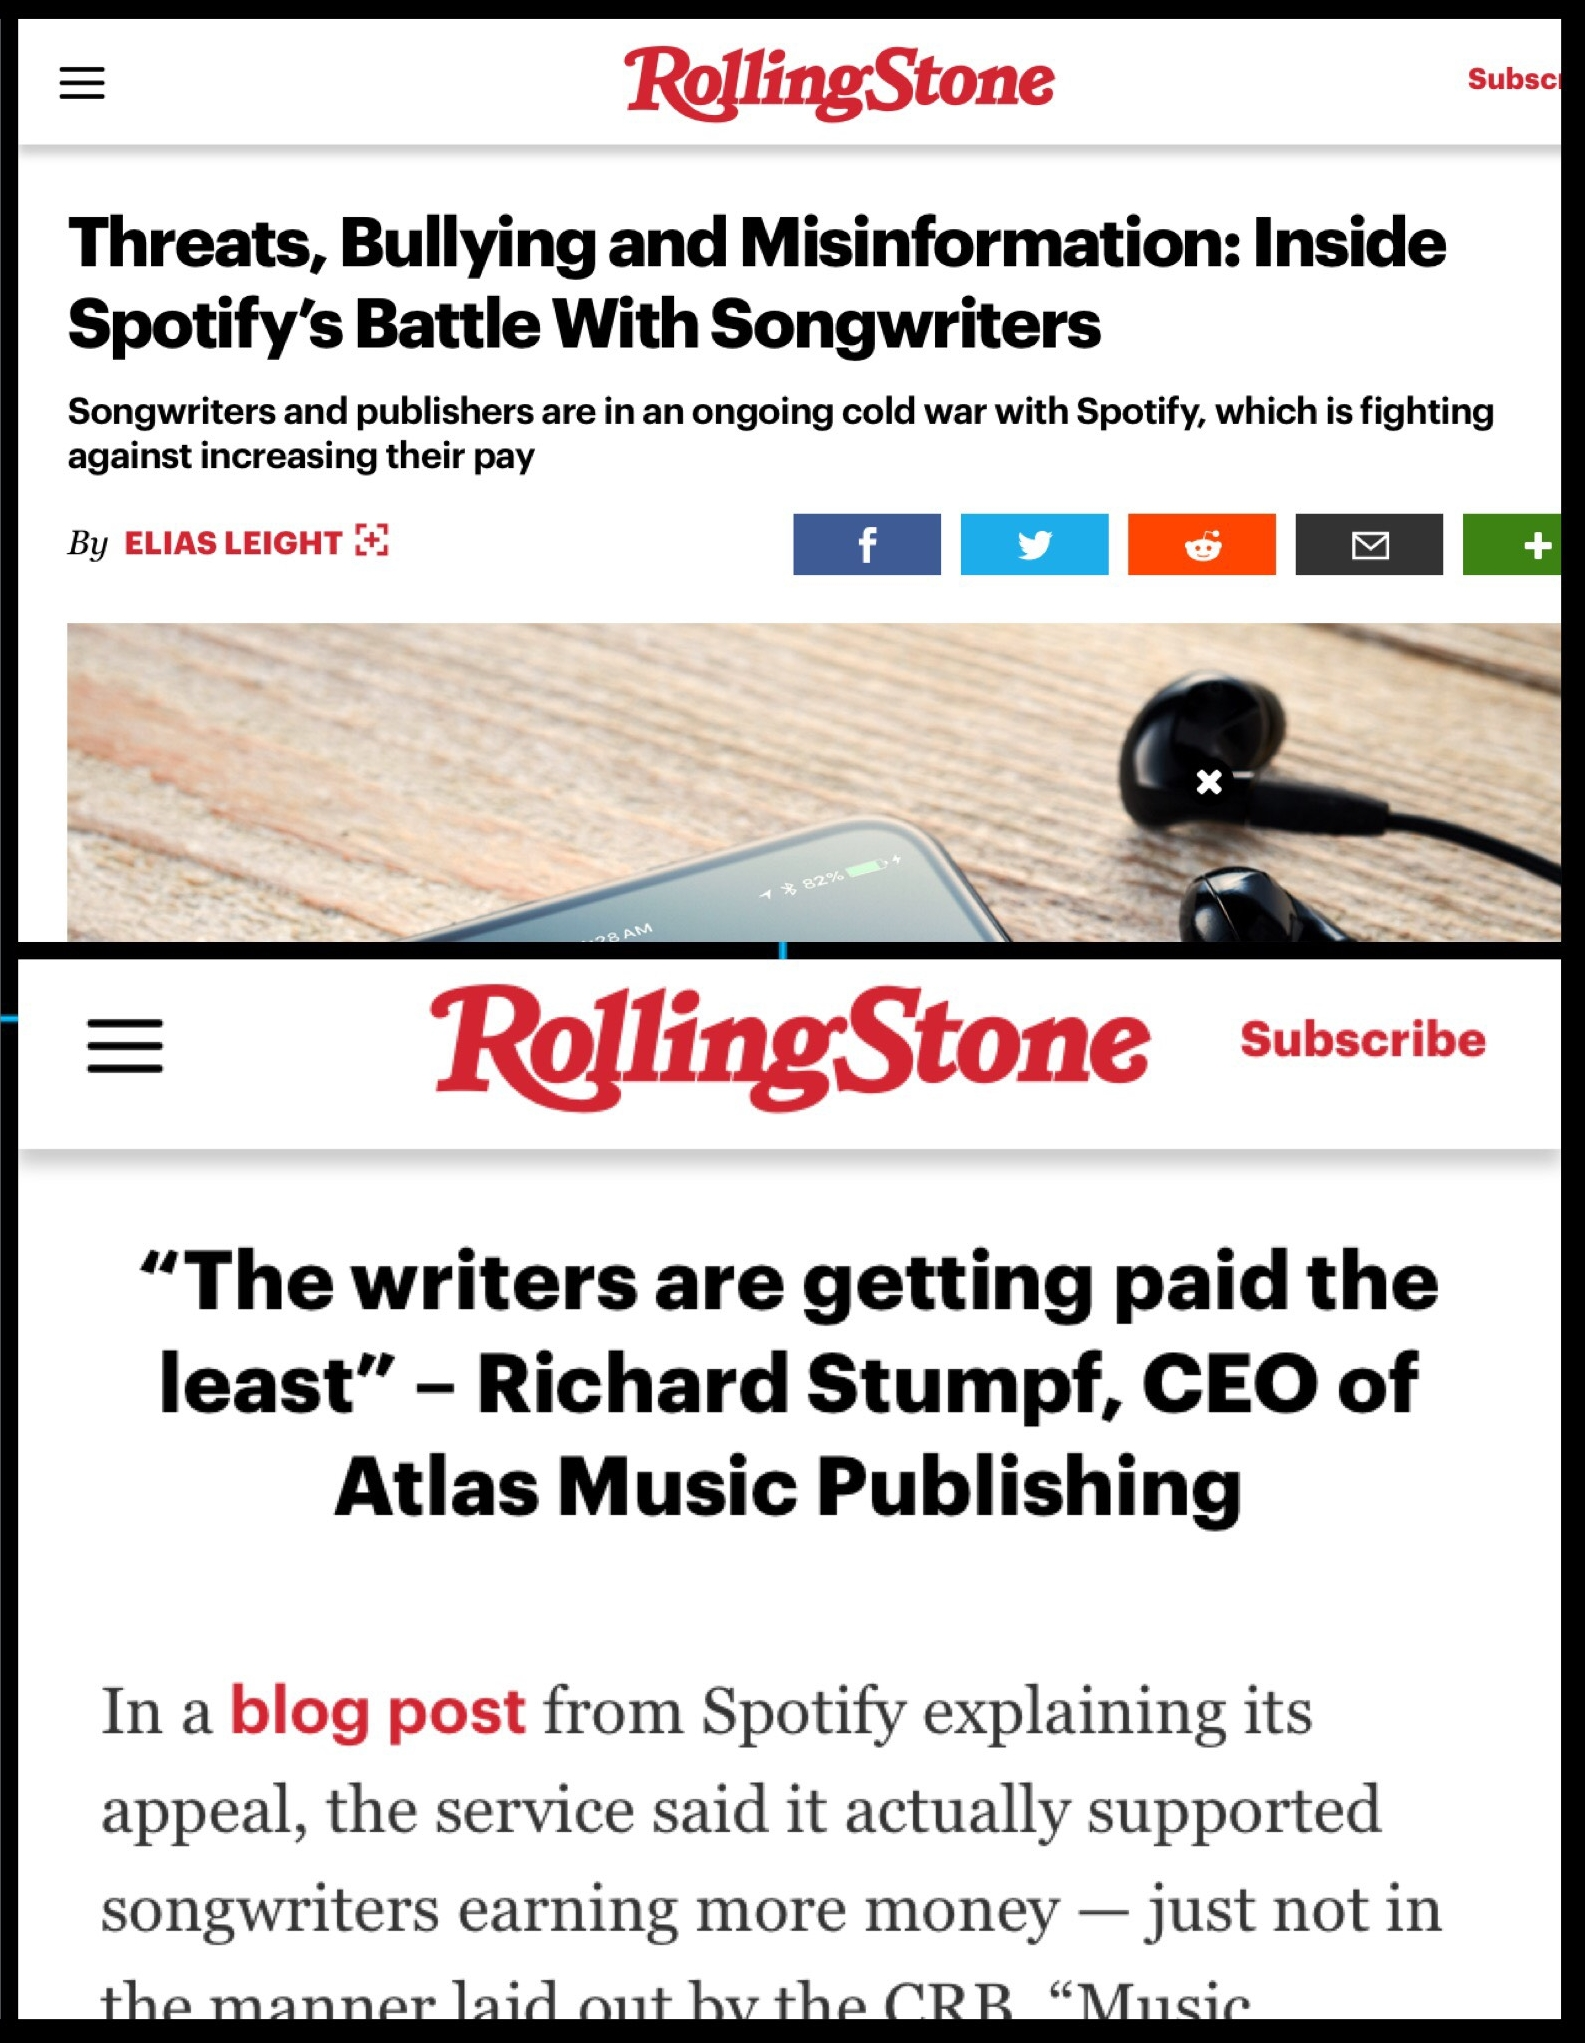 Rolling Stone: Threats, Bullying and Misinformation: Inside Spotify's Battle With Songwriters